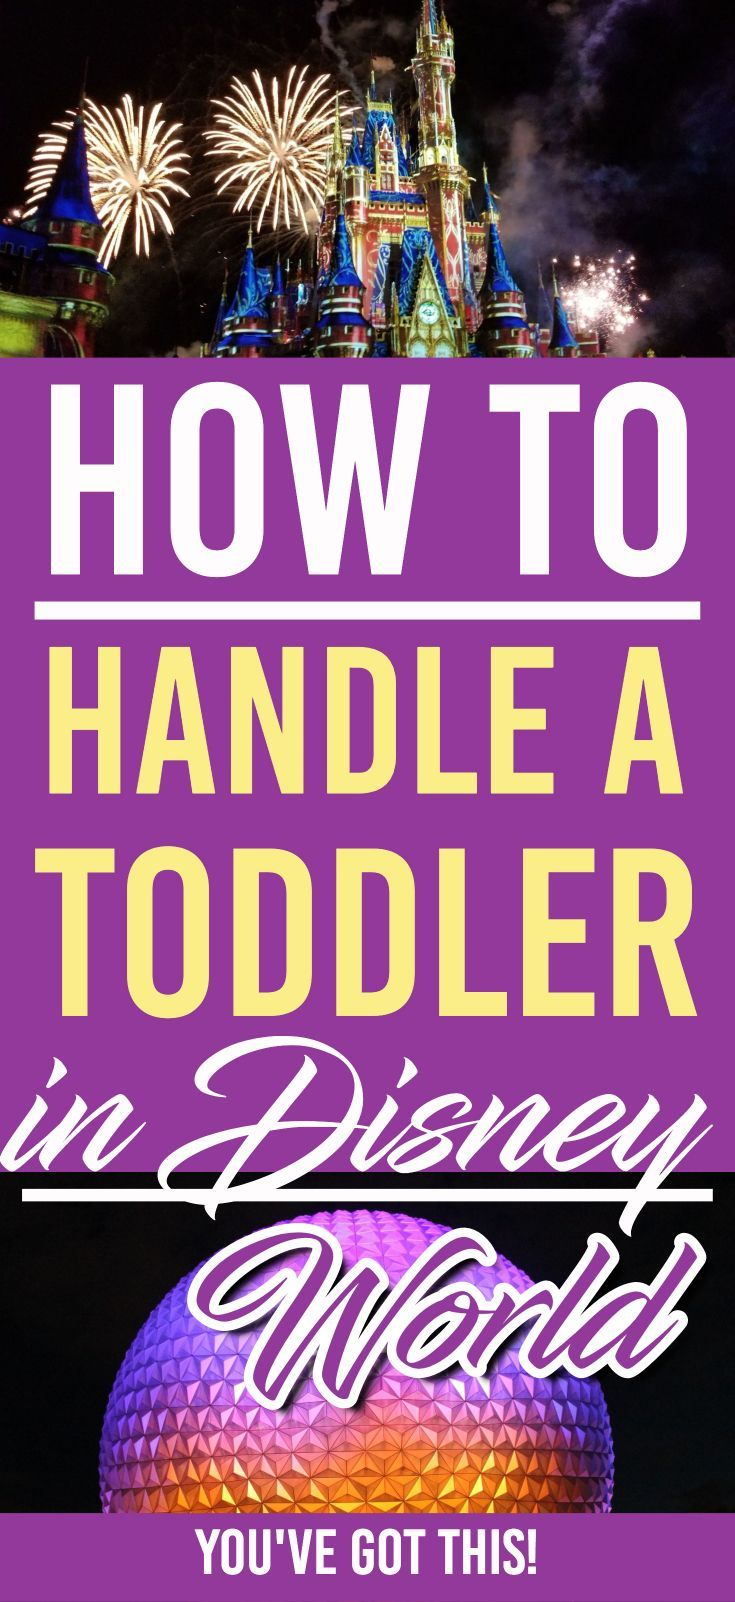 Headed to Disney World with Toddlers? Here's some great tips for you to make your Disney World Experience a great one! | DIsney | Disney World | Travelling with Toddlers |